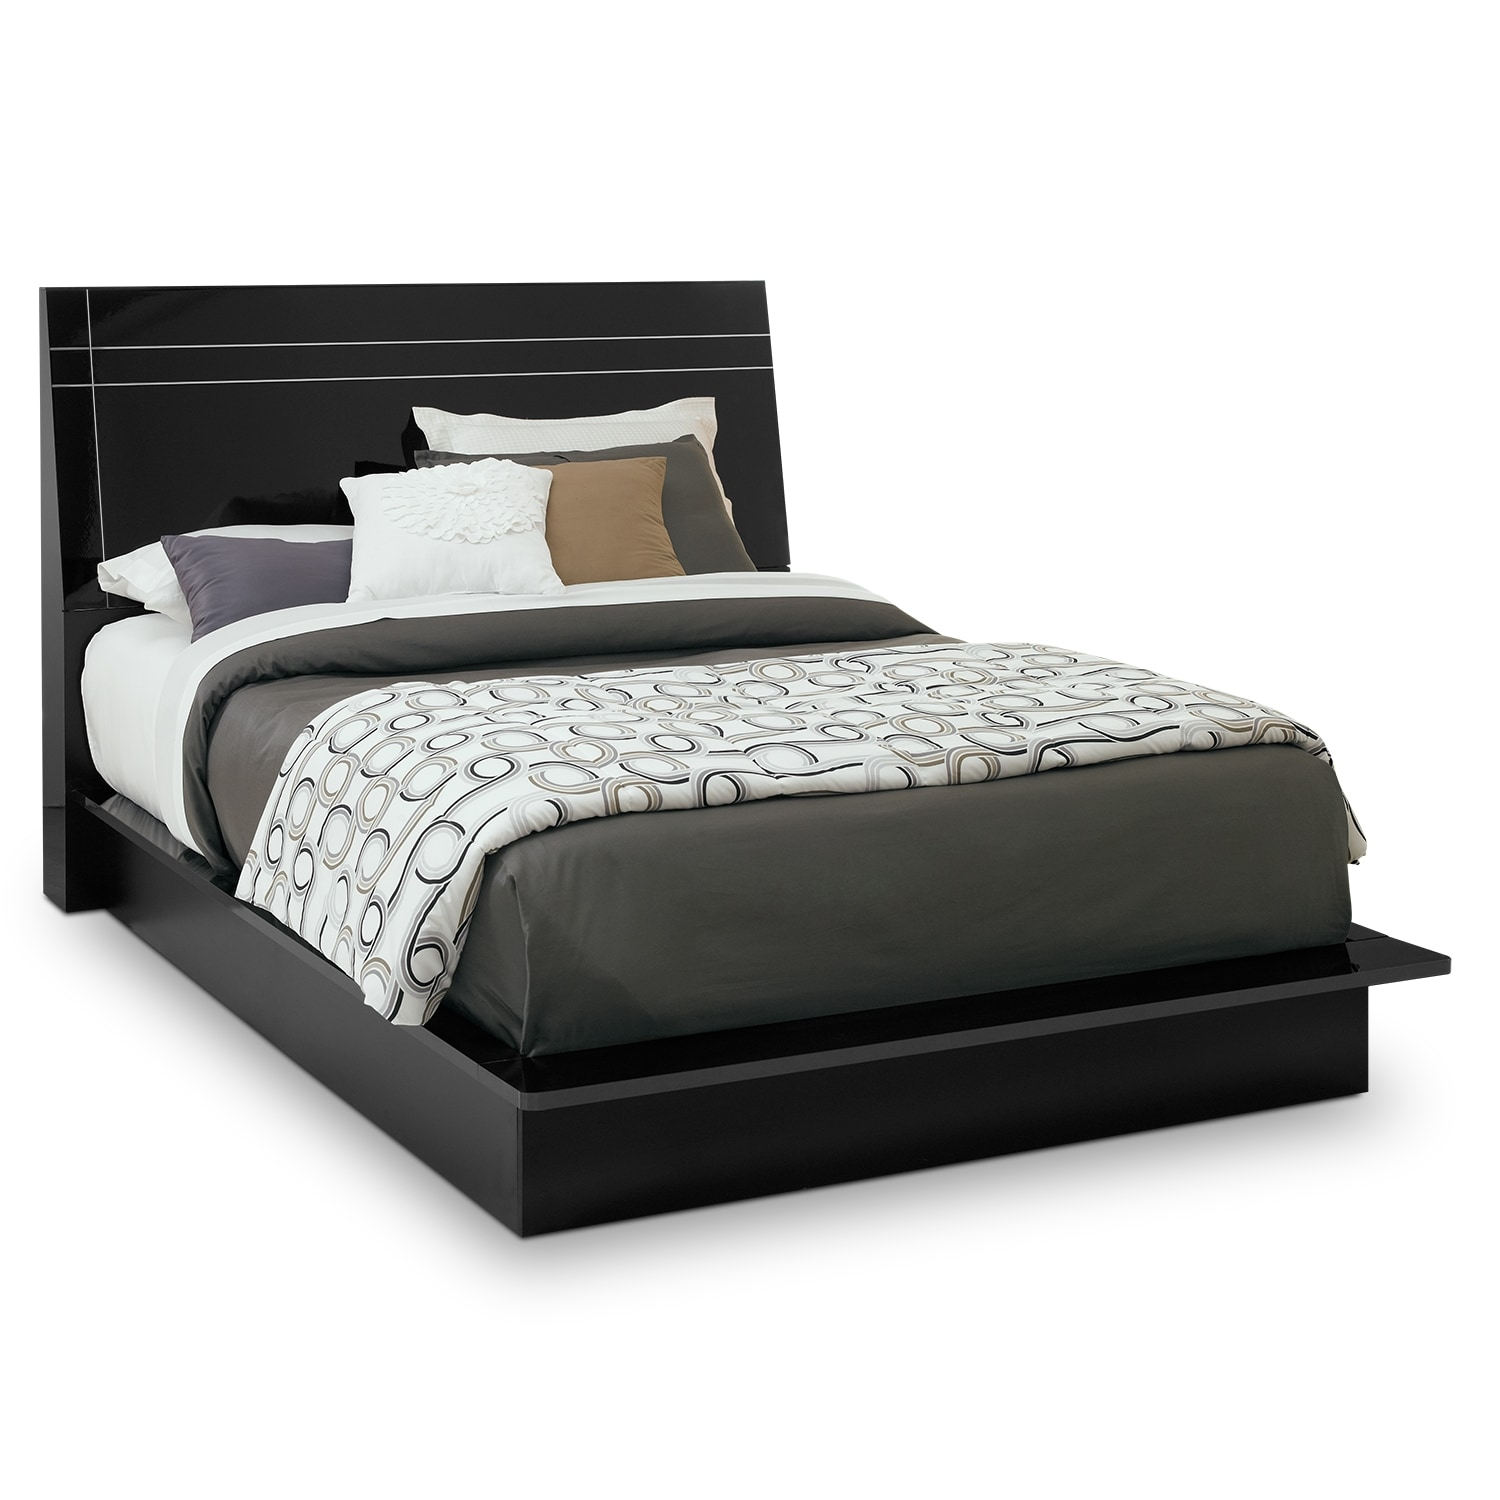 Bedroom Furniture - Dimora King Panel Bed - Black